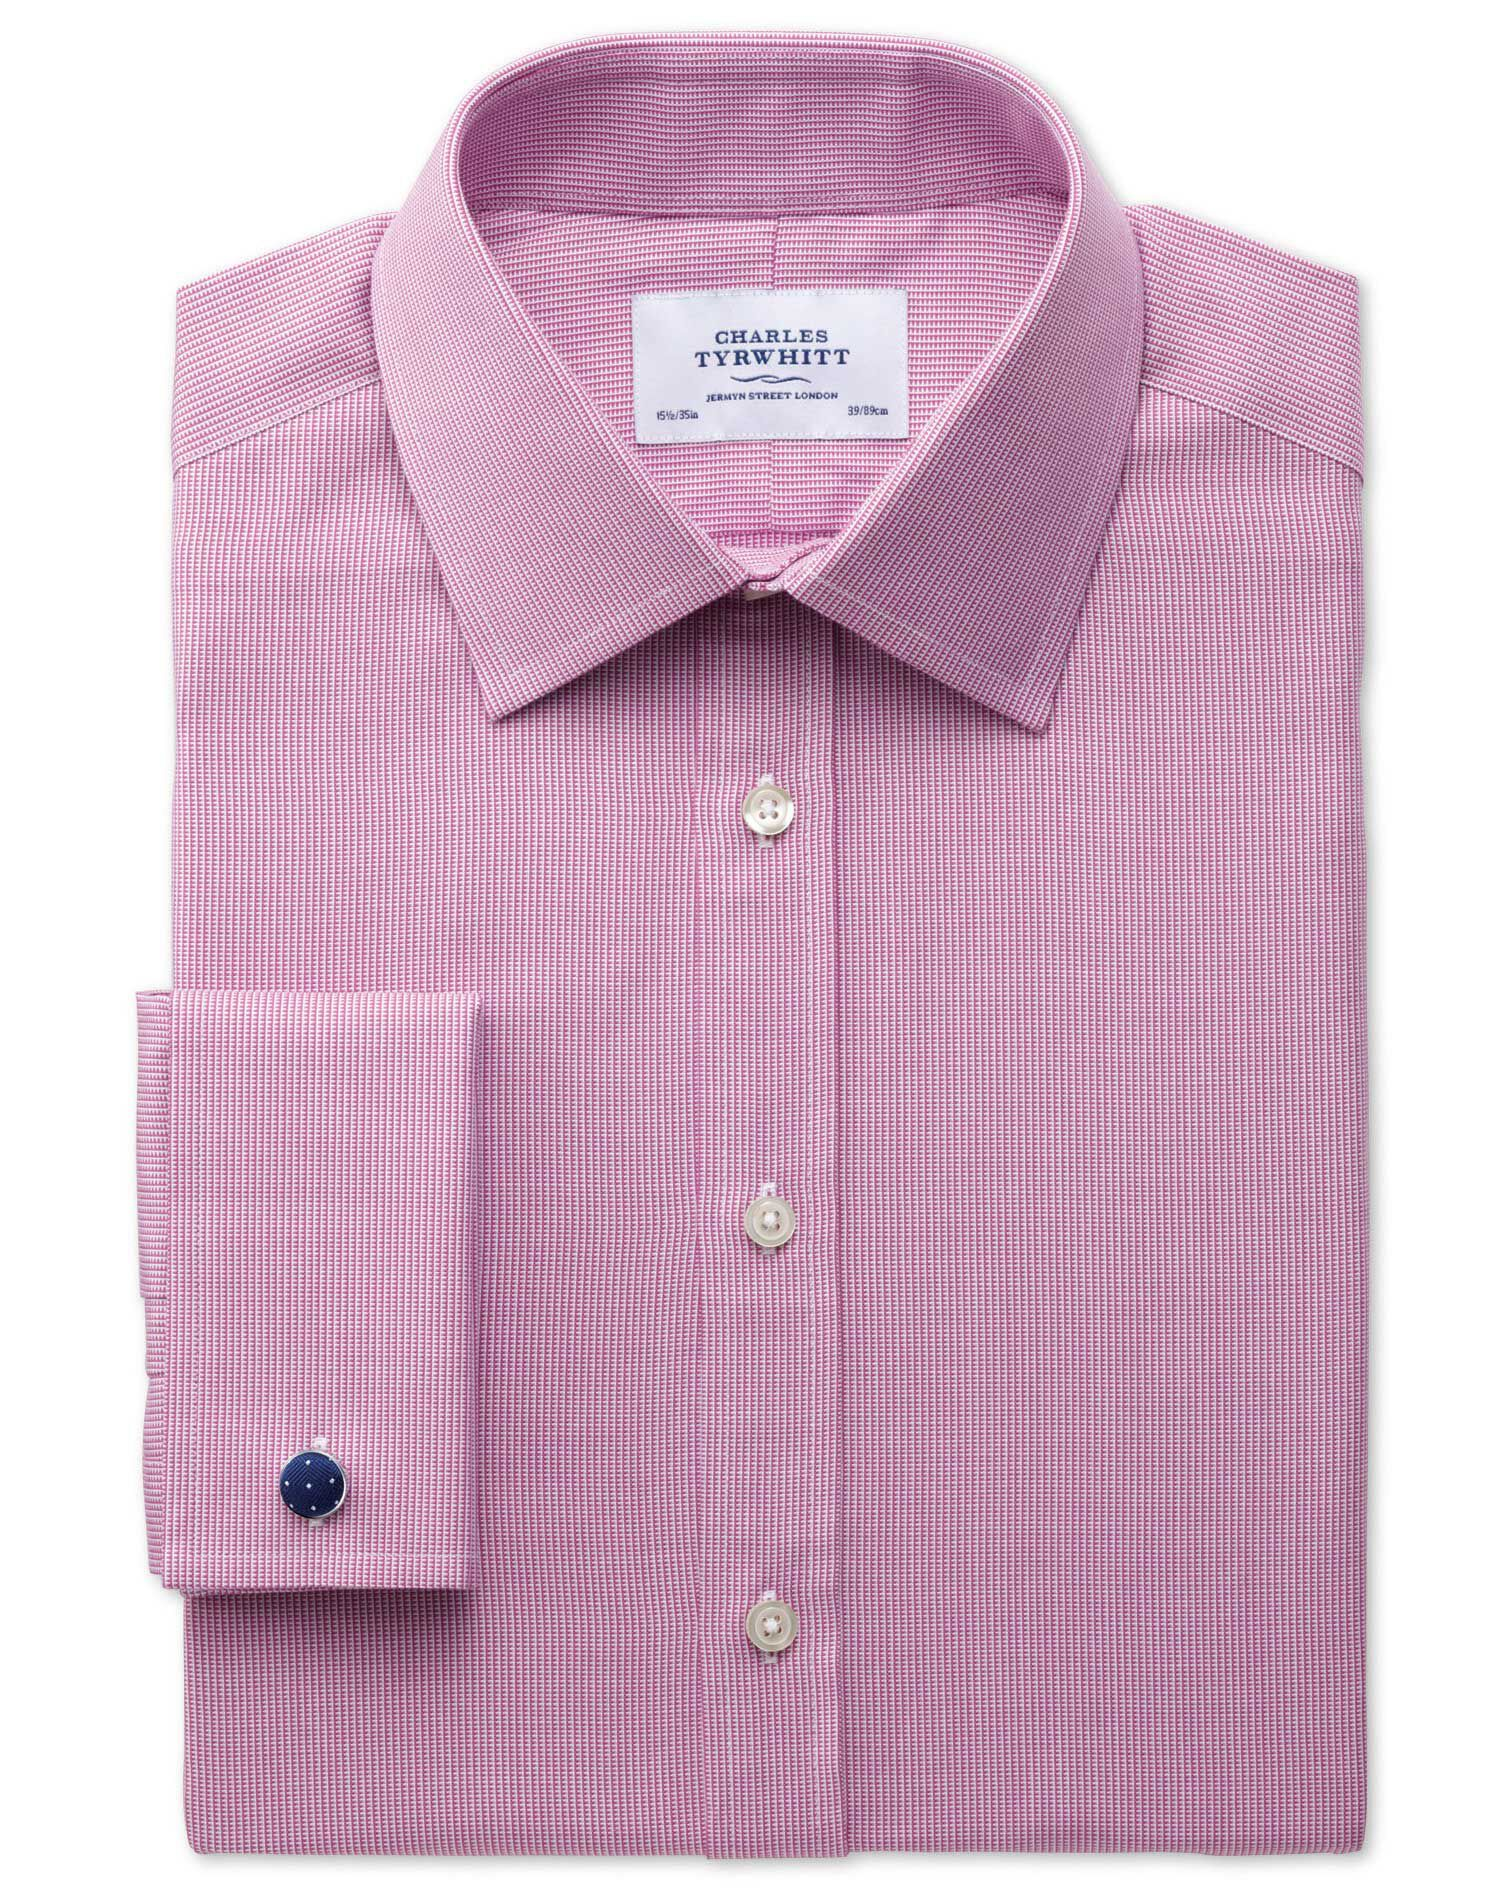 Classic Fit Oxford Magenta Cotton Formal Shirt Single Cuff Size 16/38 by Charles Tyrwhitt